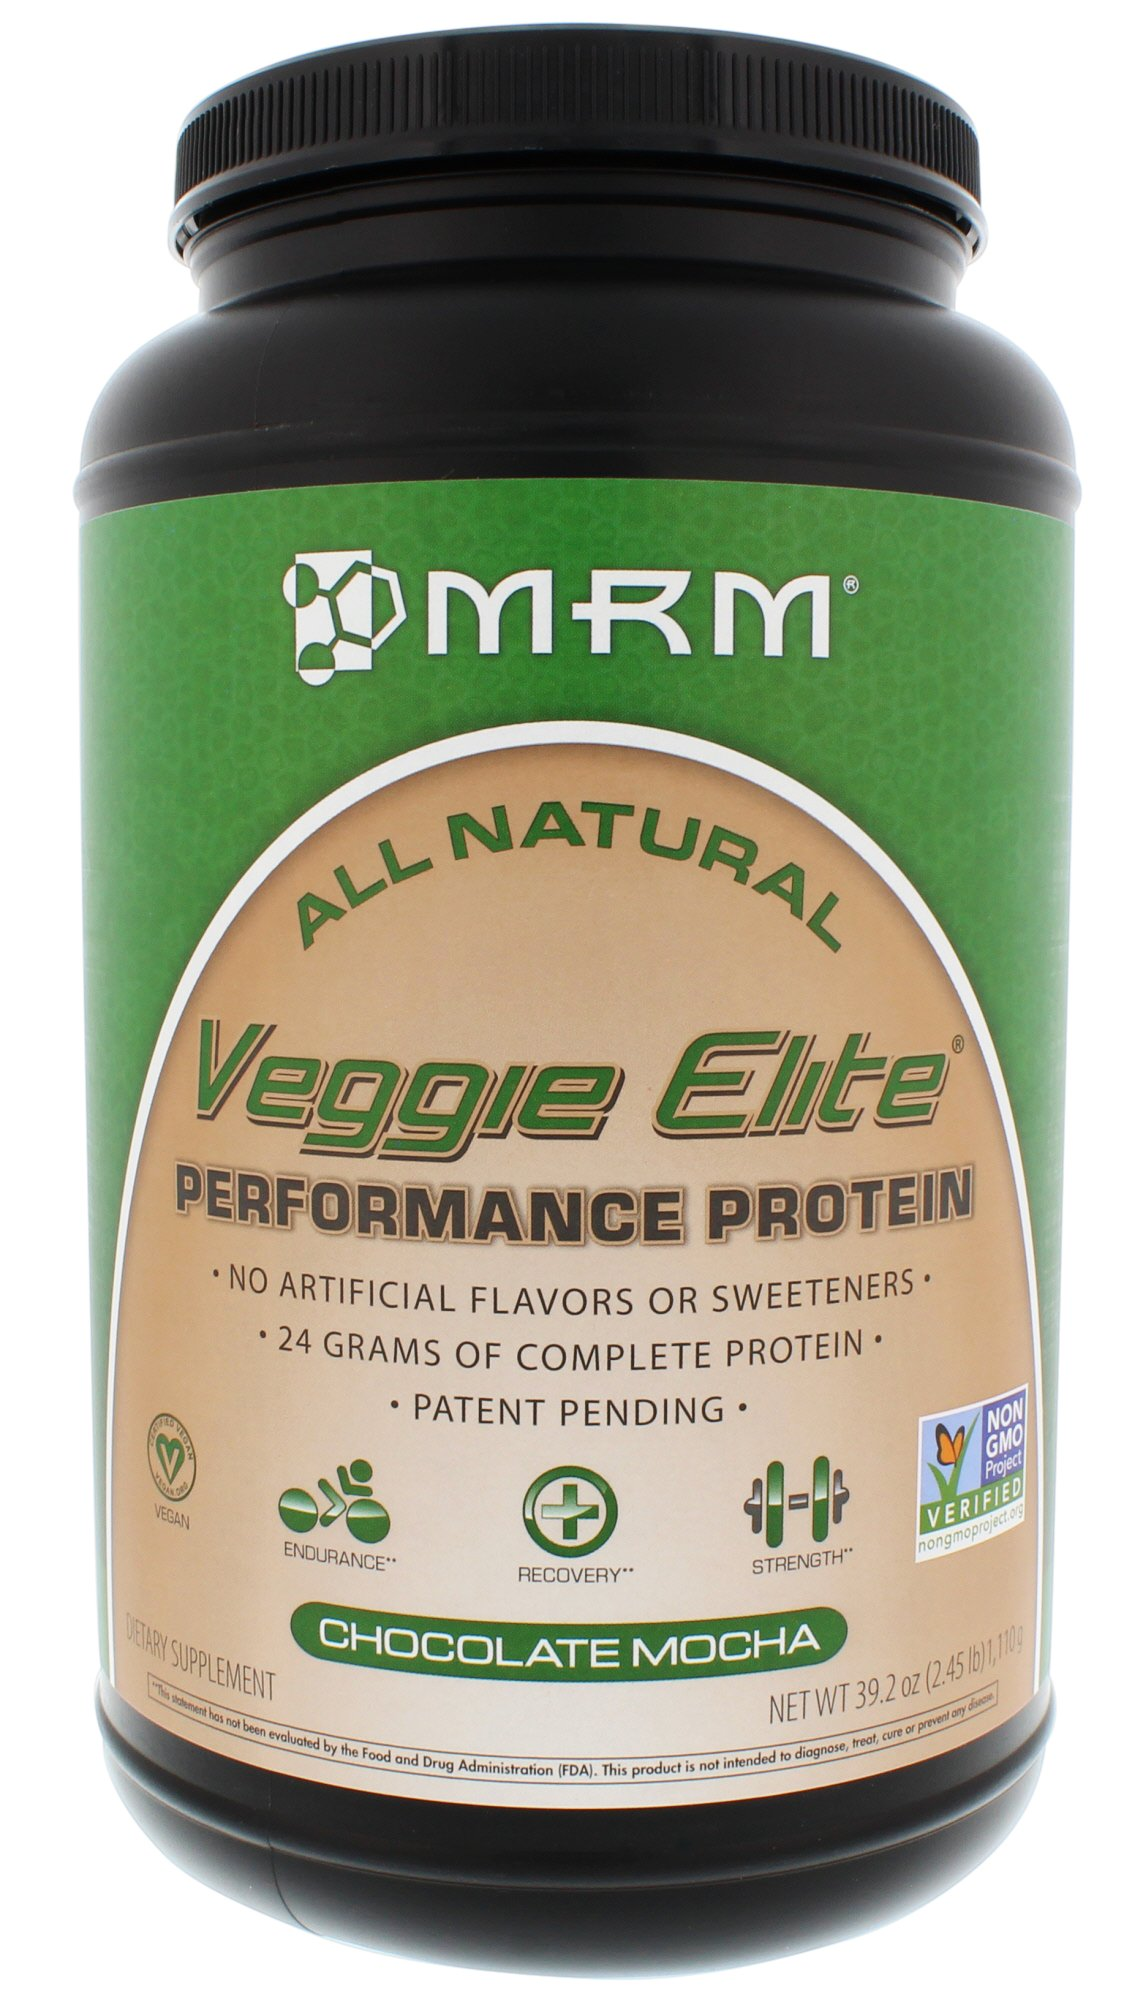 MRM - Veggie Elite Performance Protein, 24 Grams of Plant-Based Protein, Soy-Free, Vegetarian & Vegan Friendly, Non-GMO Project Verified (Chocolate Mocha, 2.45 lbs)